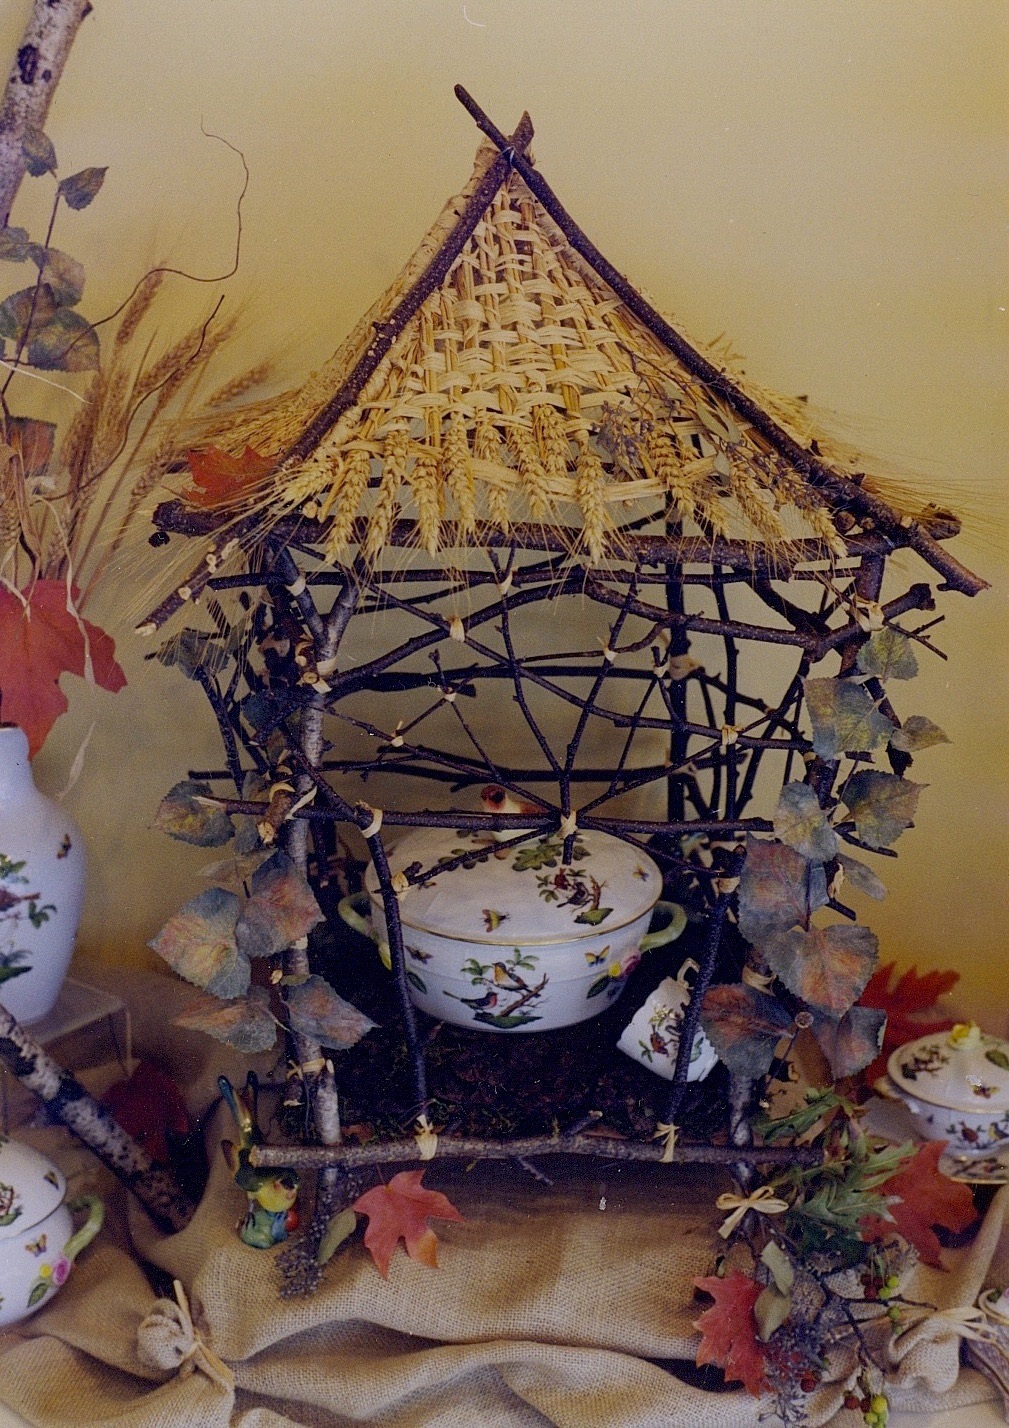 Autumn Window with  Rothschild Bird  pattern set in Chinese Chippendale style pagoda birdcage crafted from birch twigs, with woven wheat roof